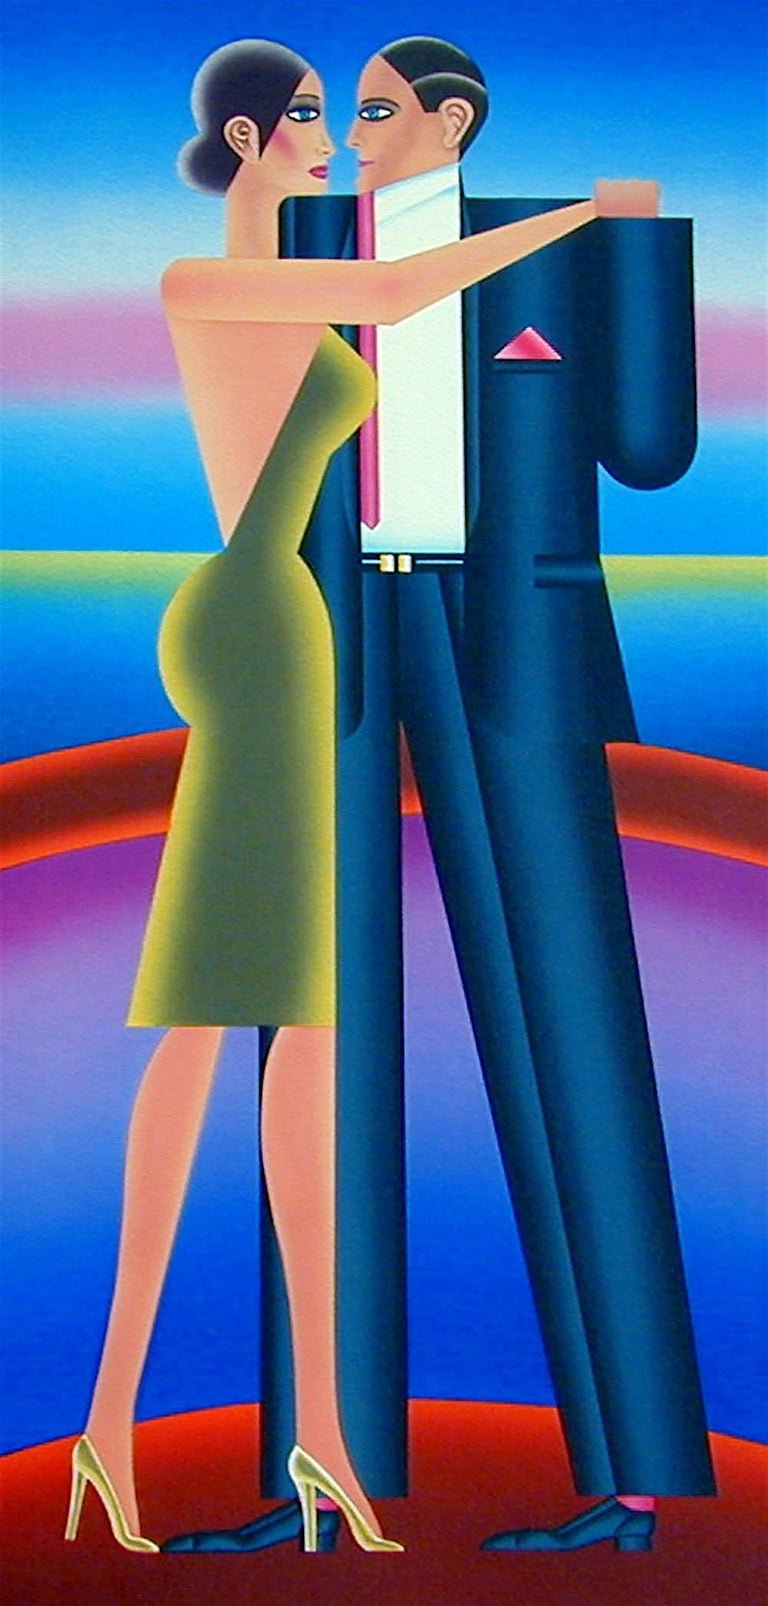 THE DANCE, Signed Lithograph, Art Deco, Tango, Neon Colors  For Sale 1